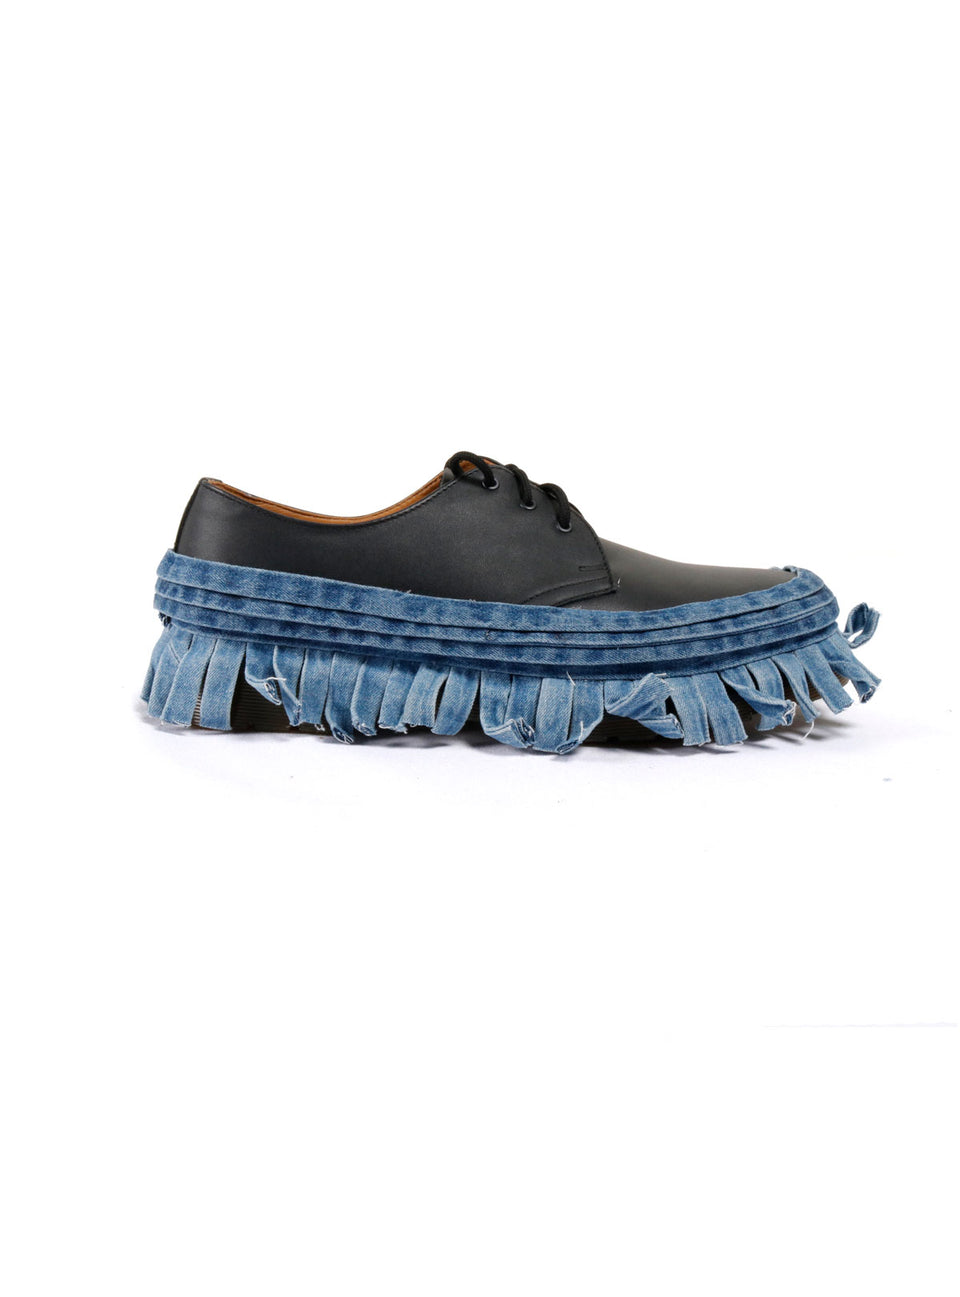 Denim Mud Flap Shoe *100% Donation - 69